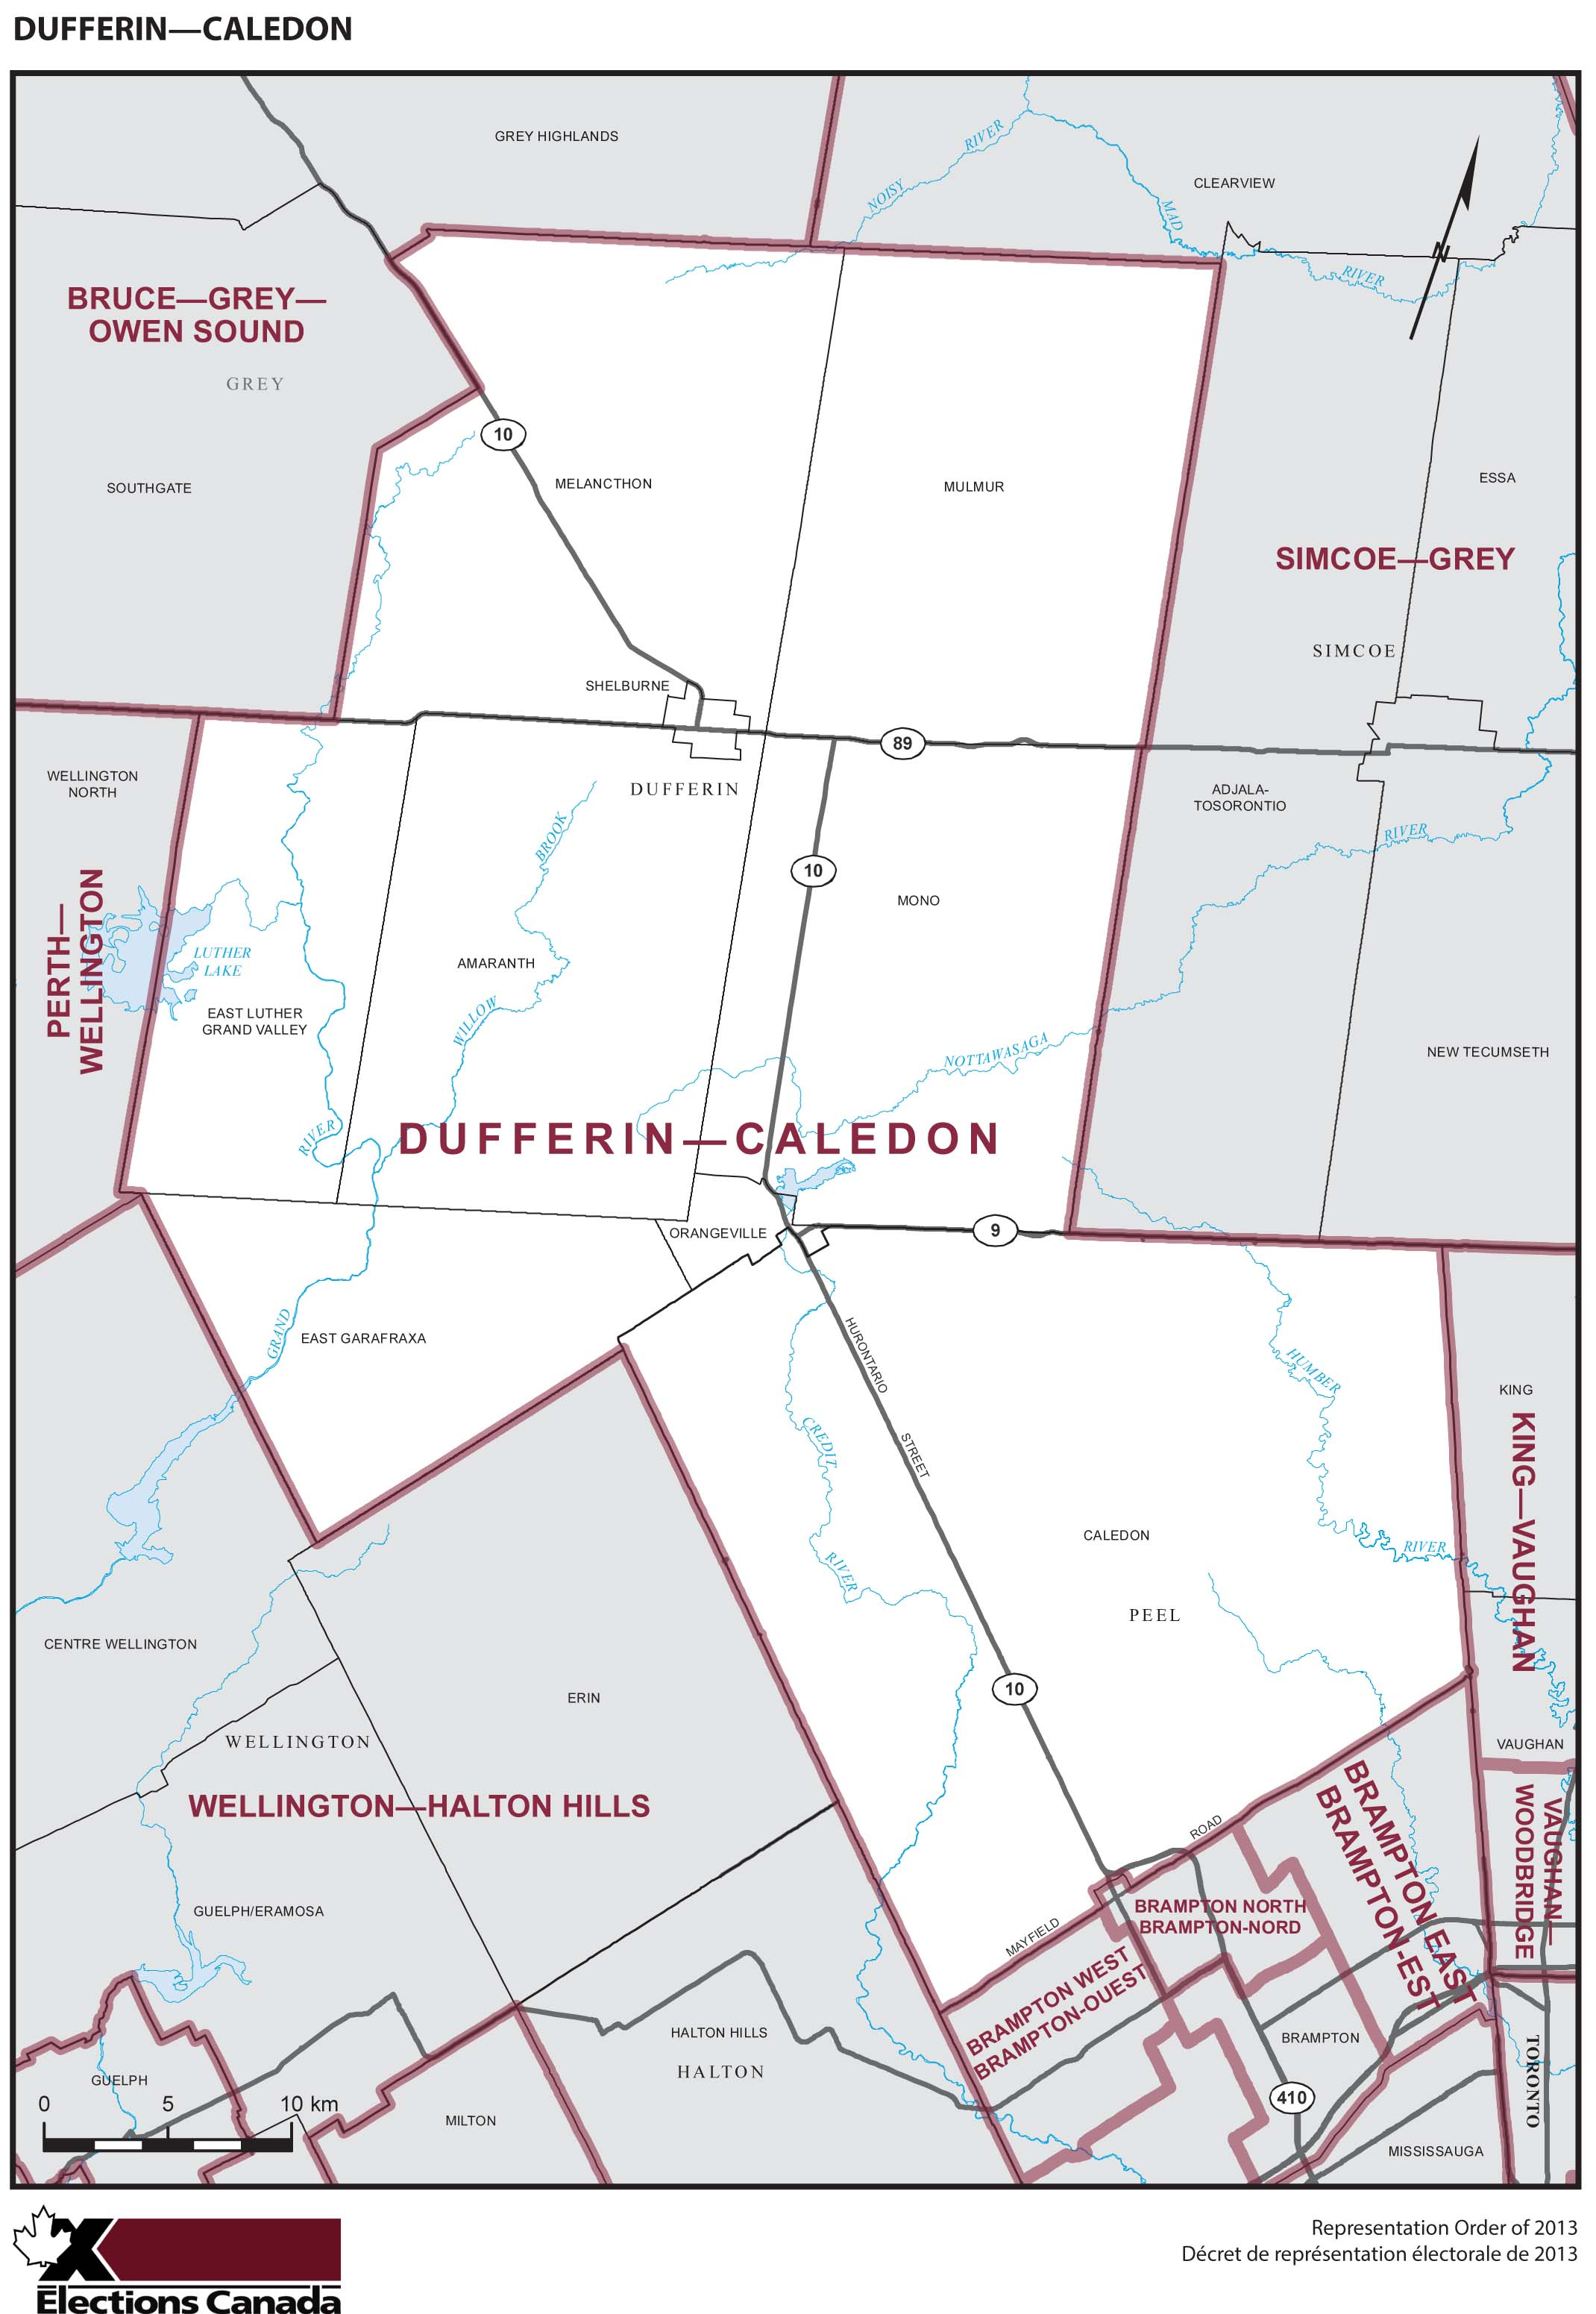 Map: Dufferin--Caledon, Federal electoral district, 2013 Representation Order (in white), Ontario